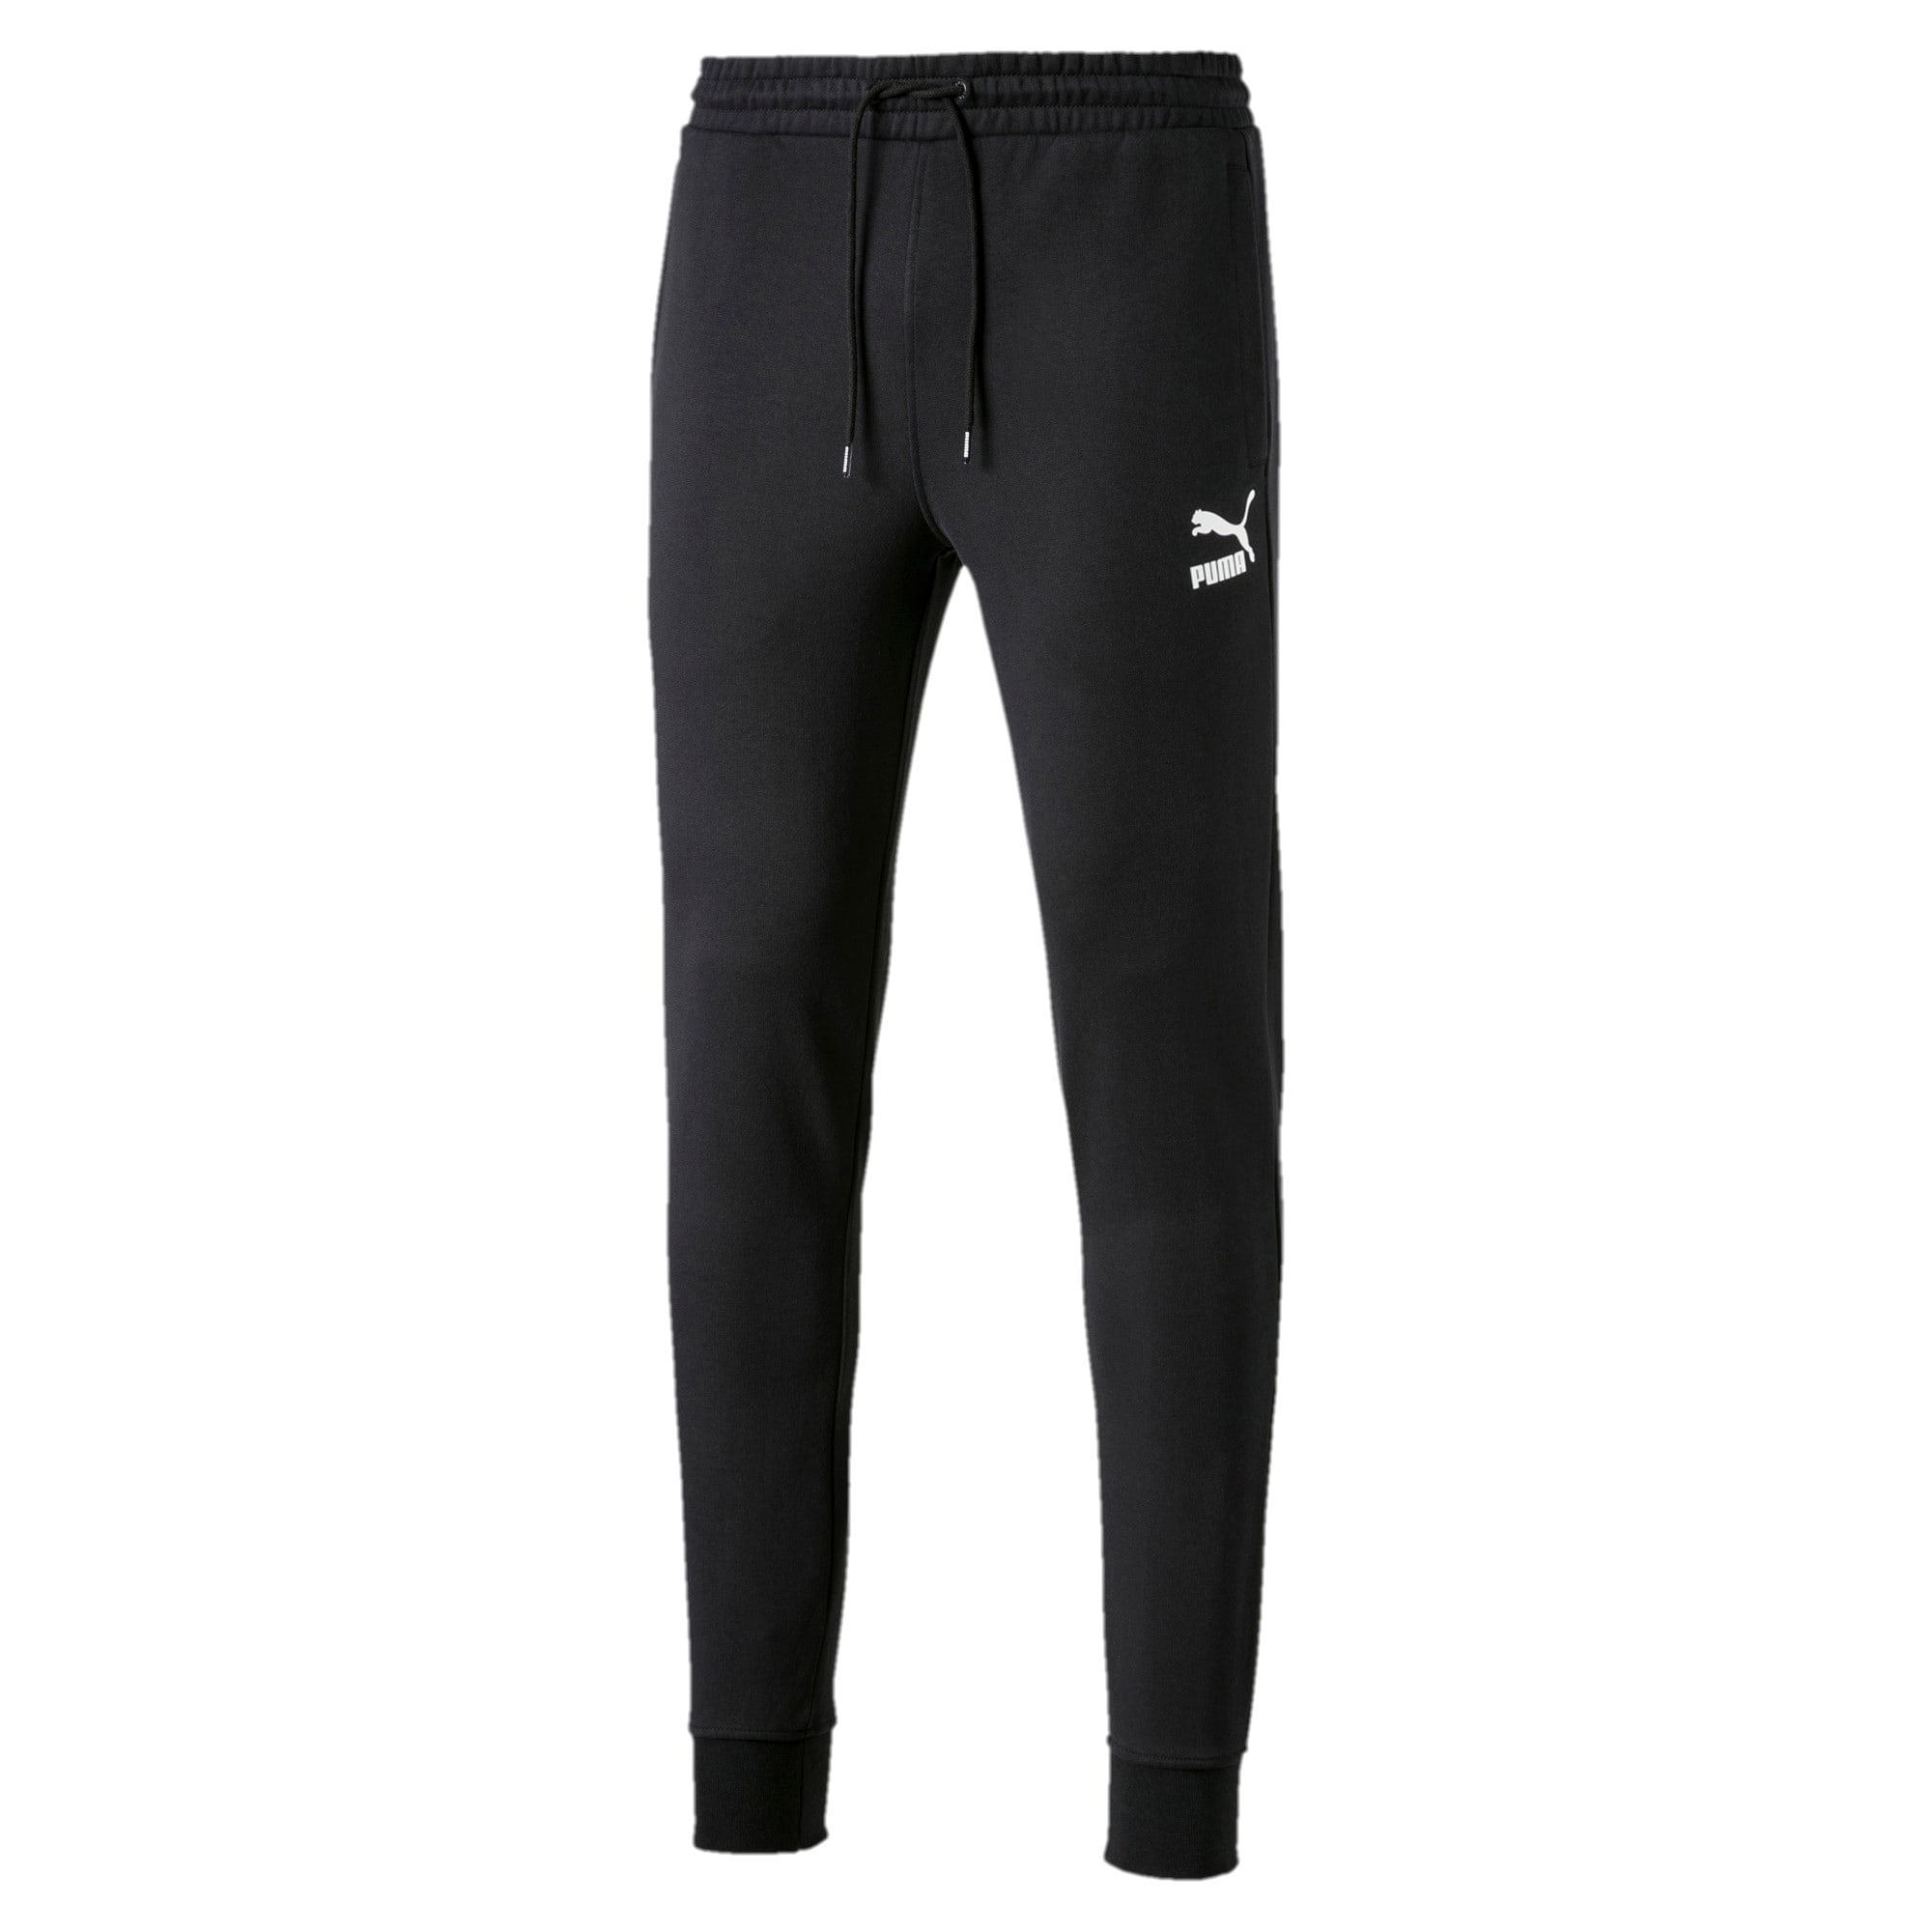 Thumbnail 2 of Classics Men's Cuffed Sweatpants, Cotton Black, medium